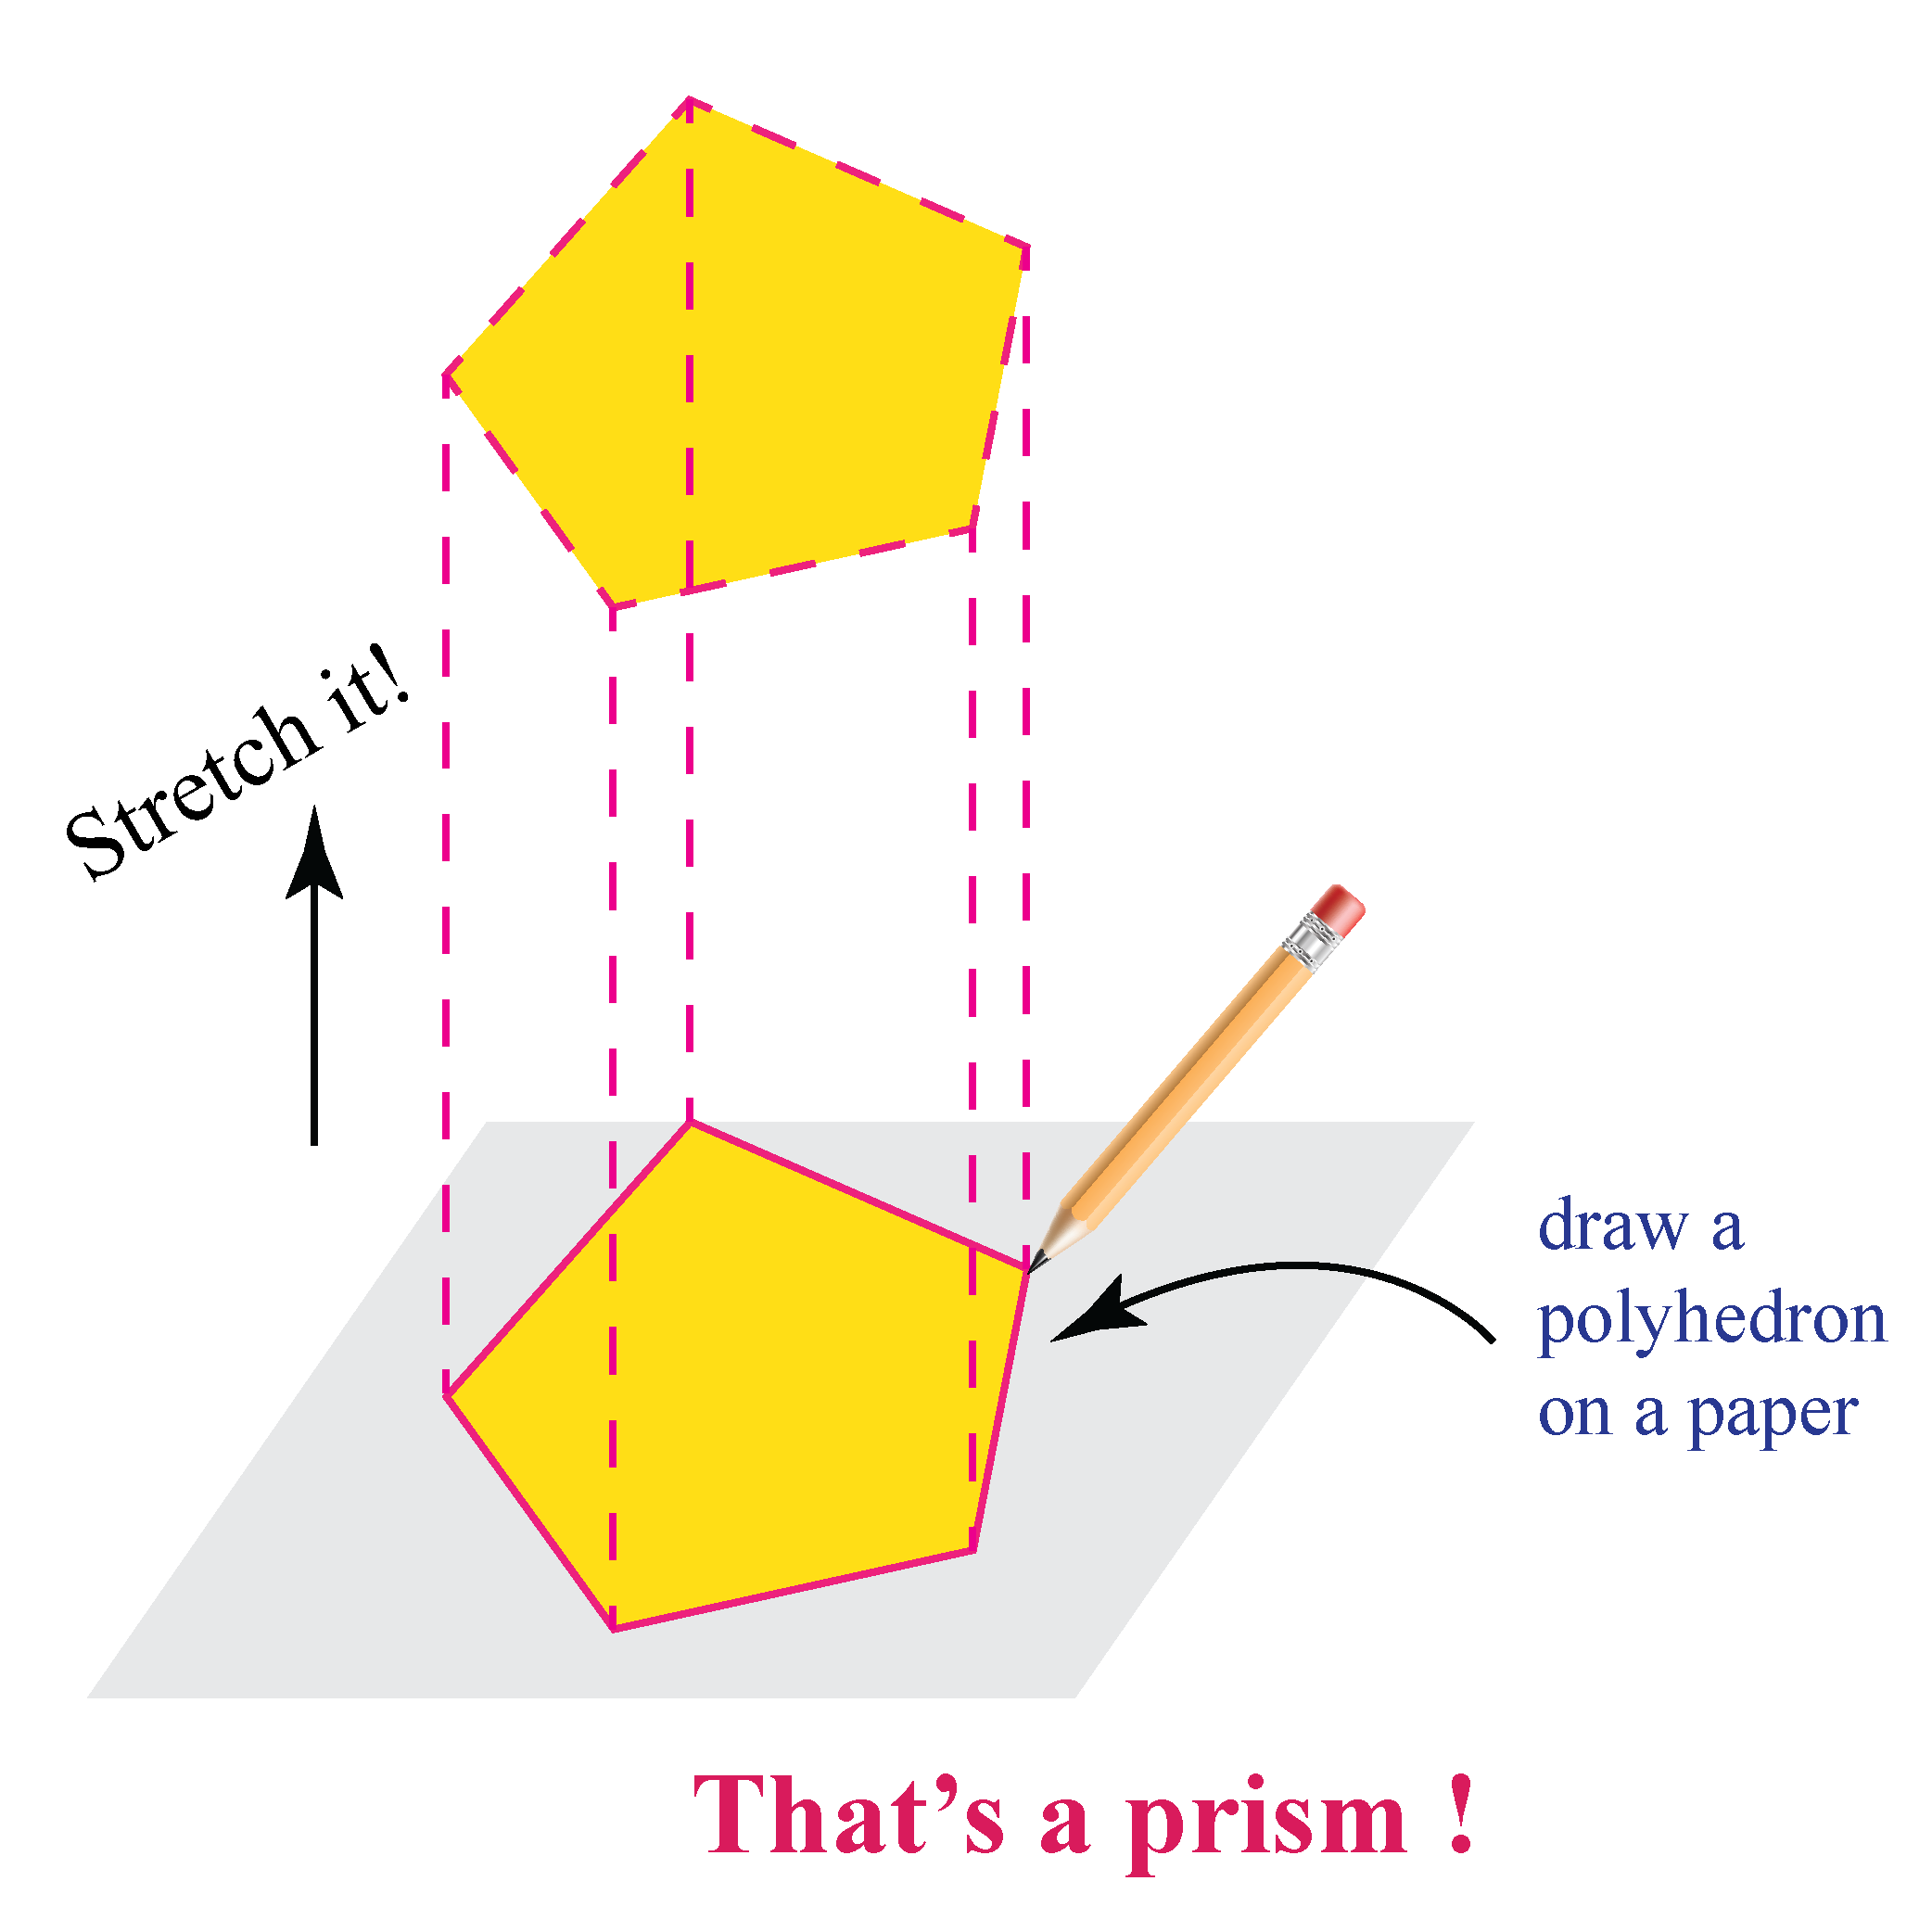 What-is-a-prism